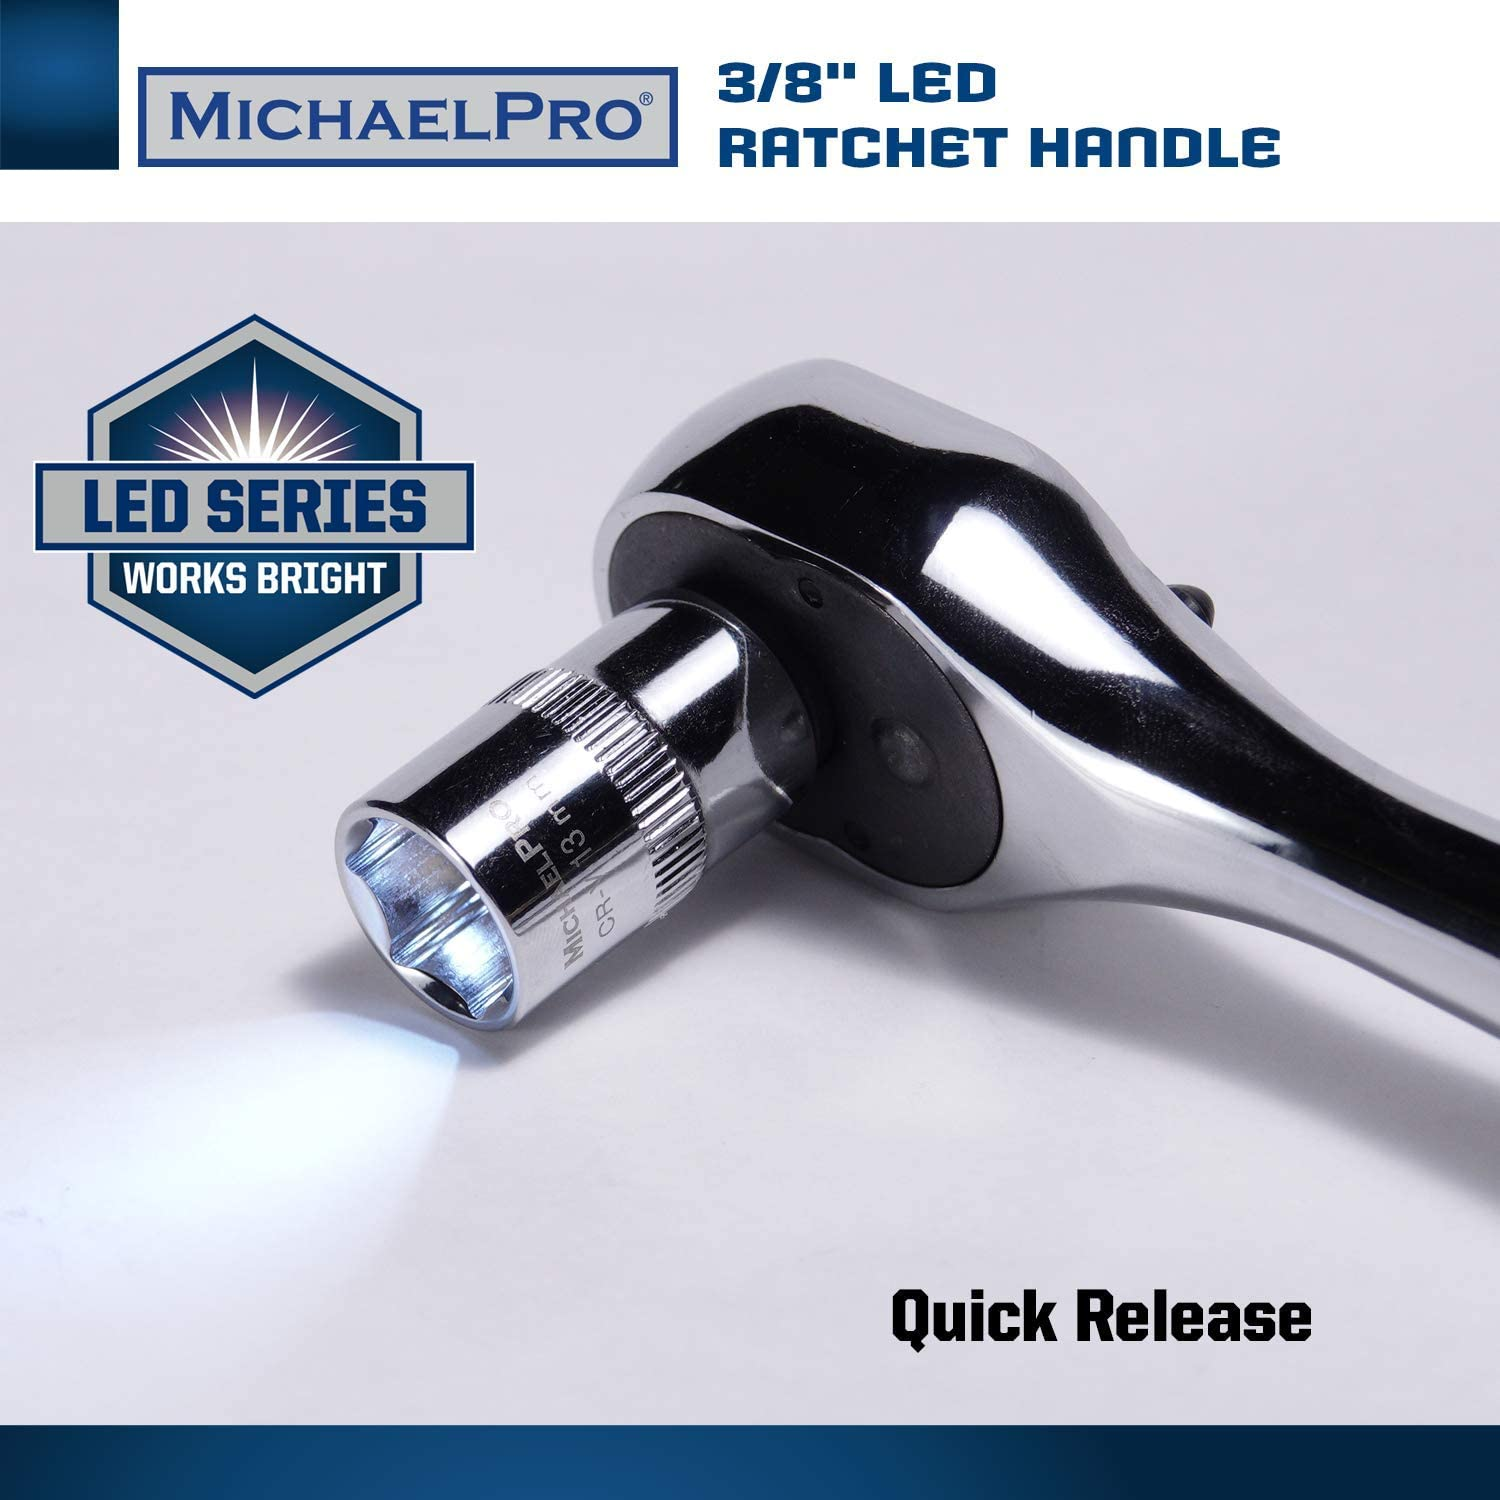 MichaelPro MP001037-3//8-Inch Drive Socket Ratchet Handle with Patented Built-in LED Flashlight Design,Quick Release,Reversible Ratchet Wrench 72 Tooth,CR-V Steel and Mirror Polish Finish